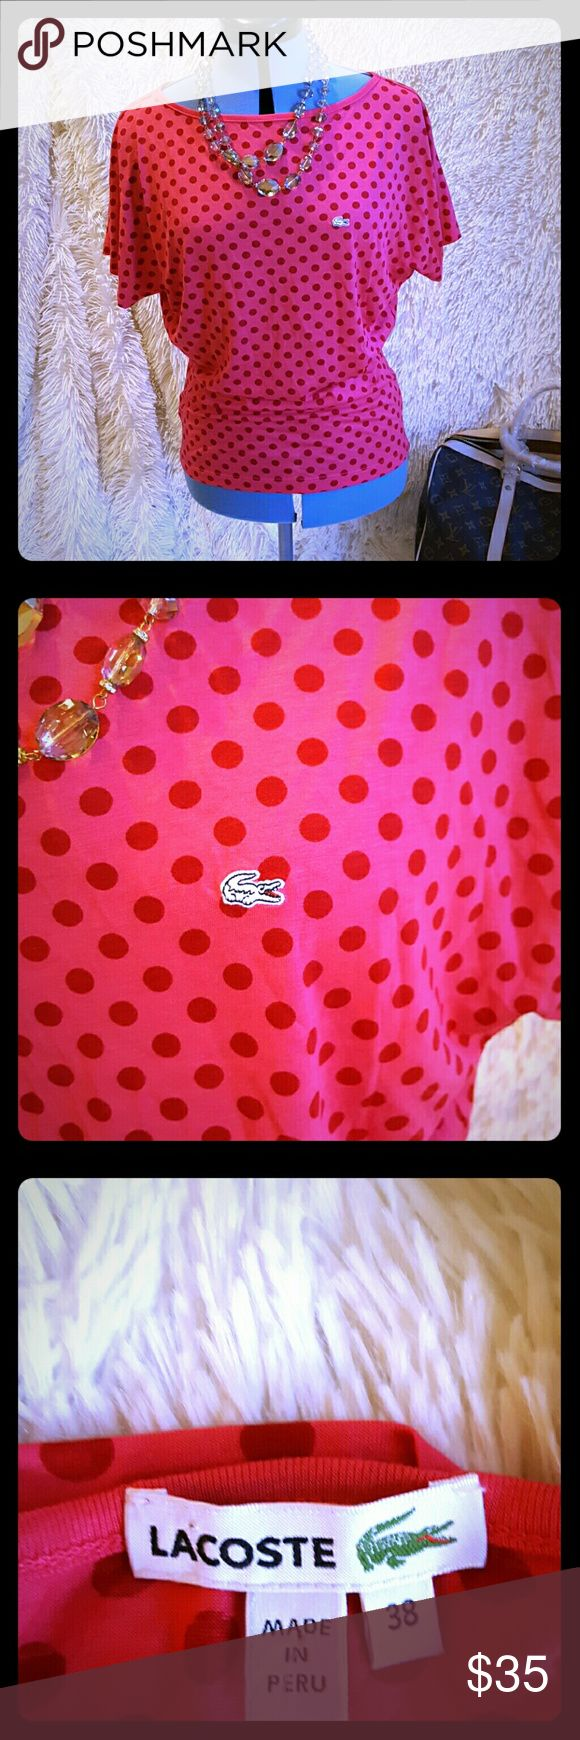 *Lacoste* pink and red polka dot shirt 38 small This darling Lacoste shirt is nwot!  It's very soft and the colors pop. Size 38=small  Pink with red polka dots  Comes from smoke free home!  * Don't forget to check out my other designer items for sale and make me some offers* Lacoste Tops